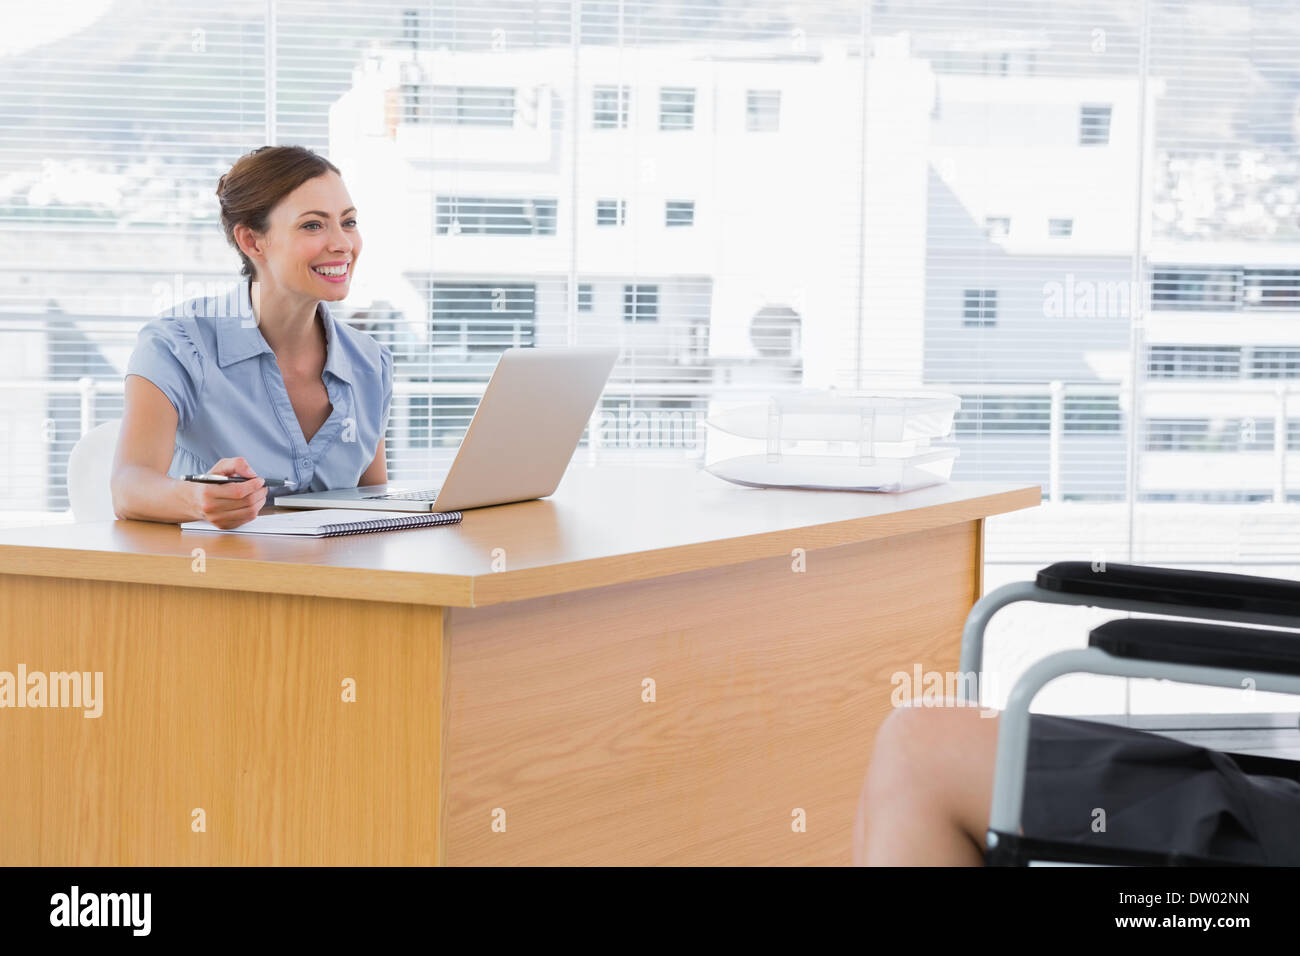 businessw smiling at disabled interviewee stock photo royalty businessw smiling at disabled interviewee